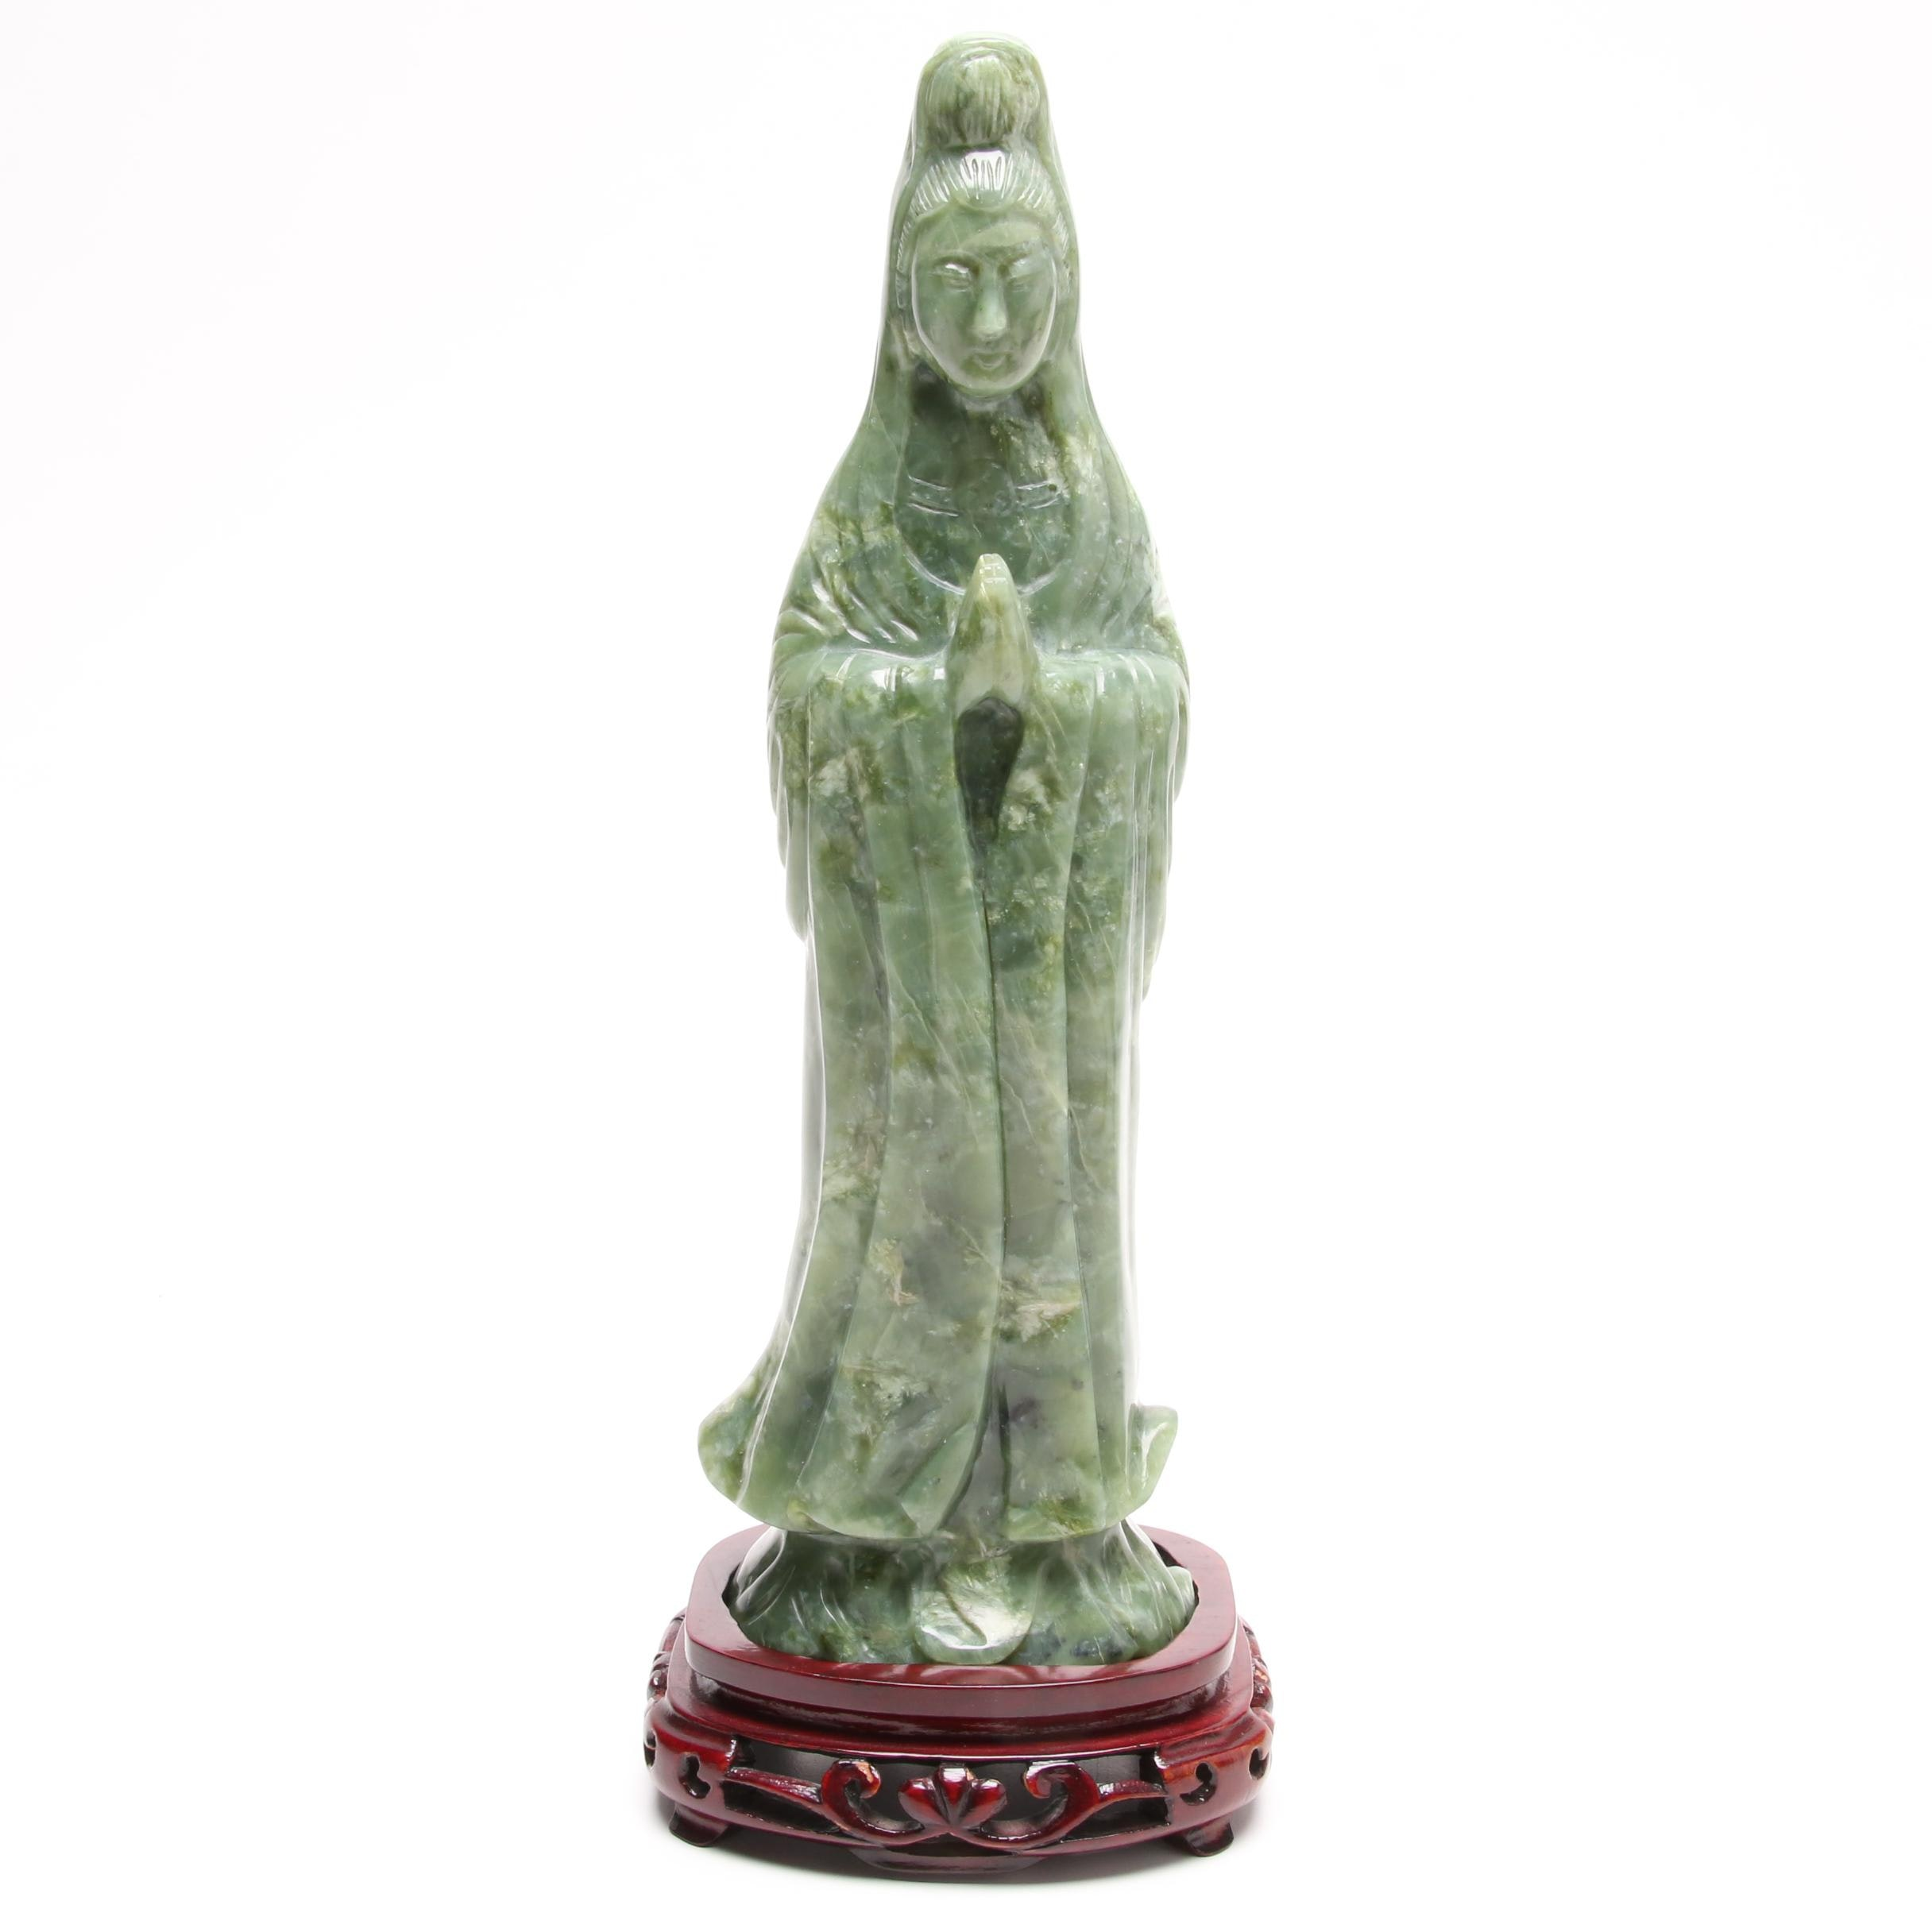 Chinese Carved Serpentine Sculpture